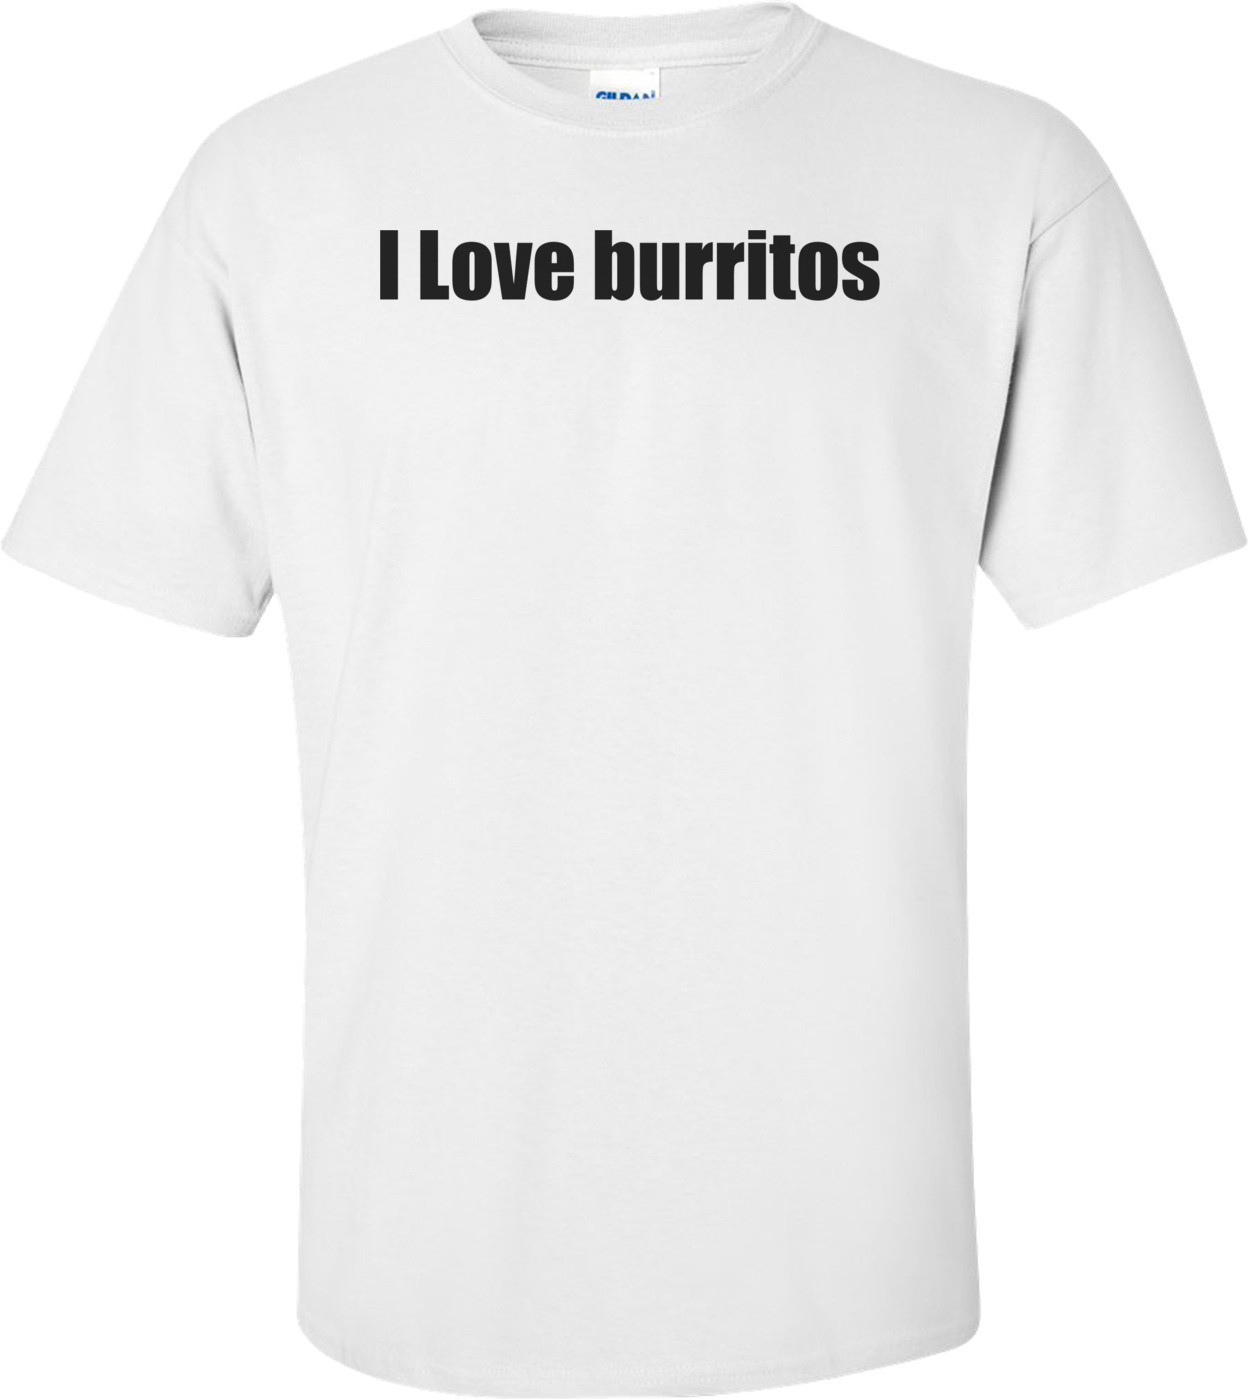 I Love burritos T-Shirt